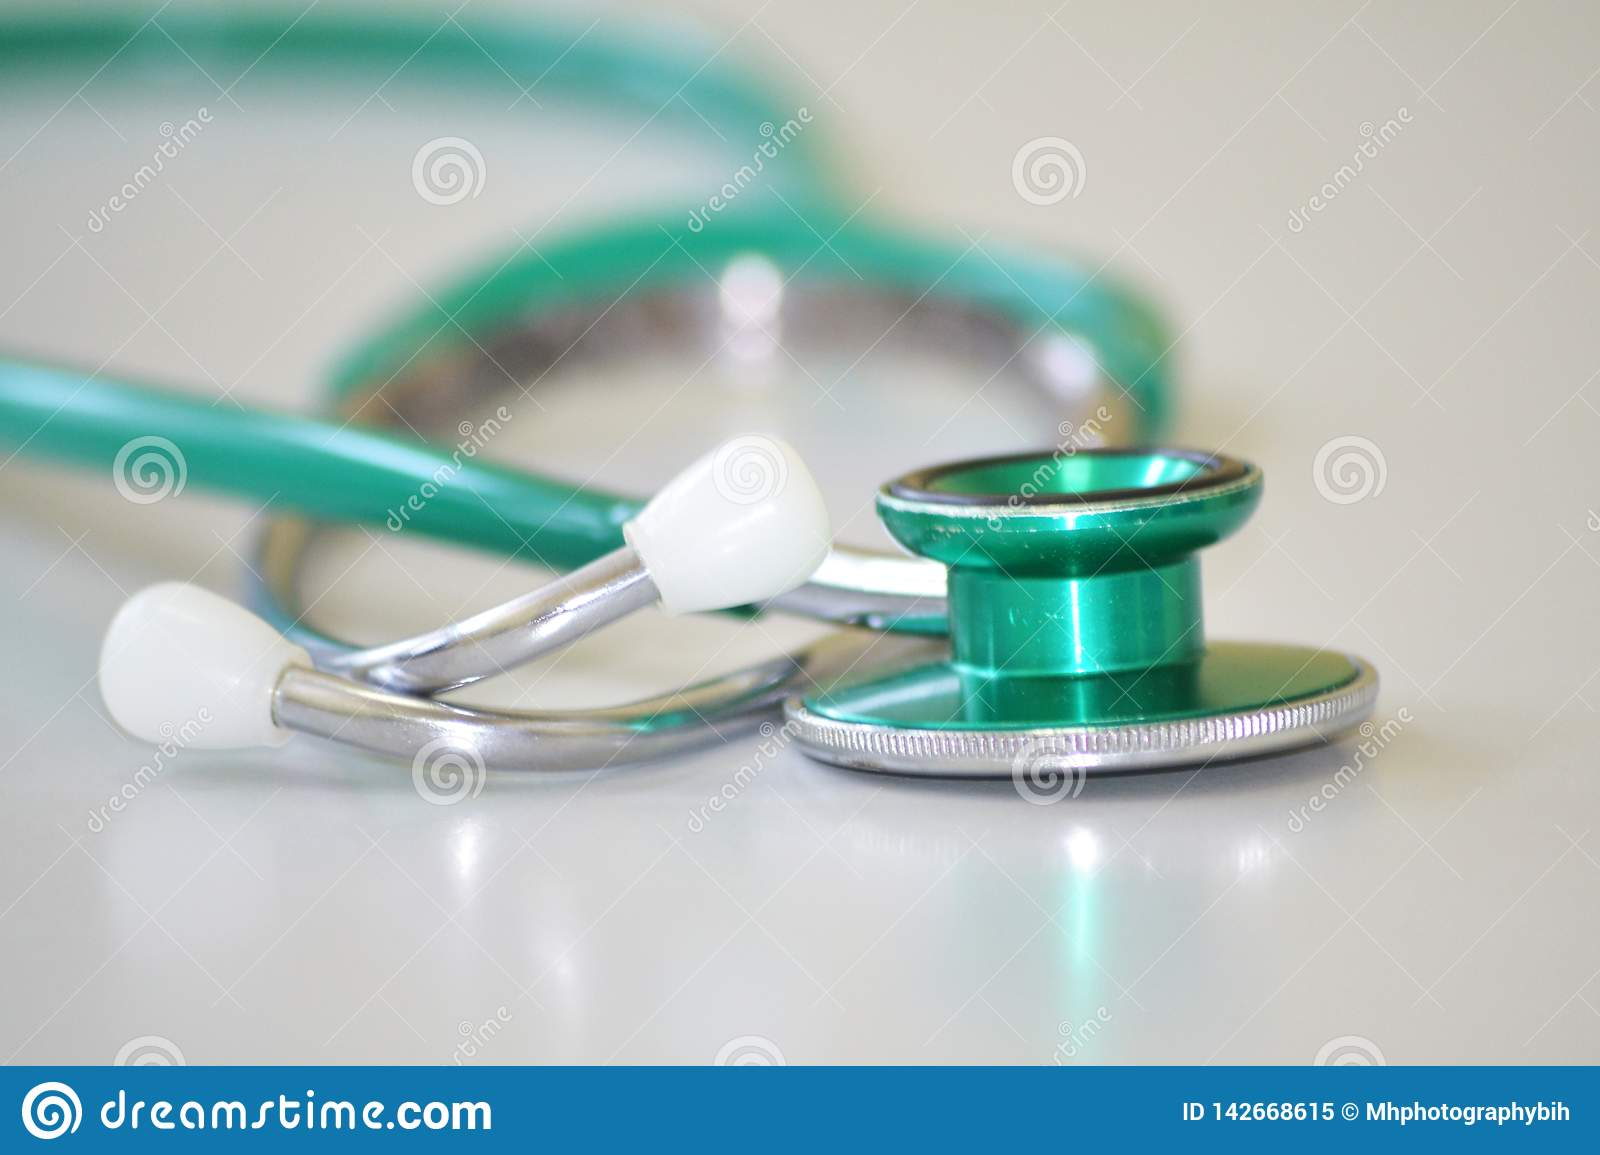 Green and gray stethoscope